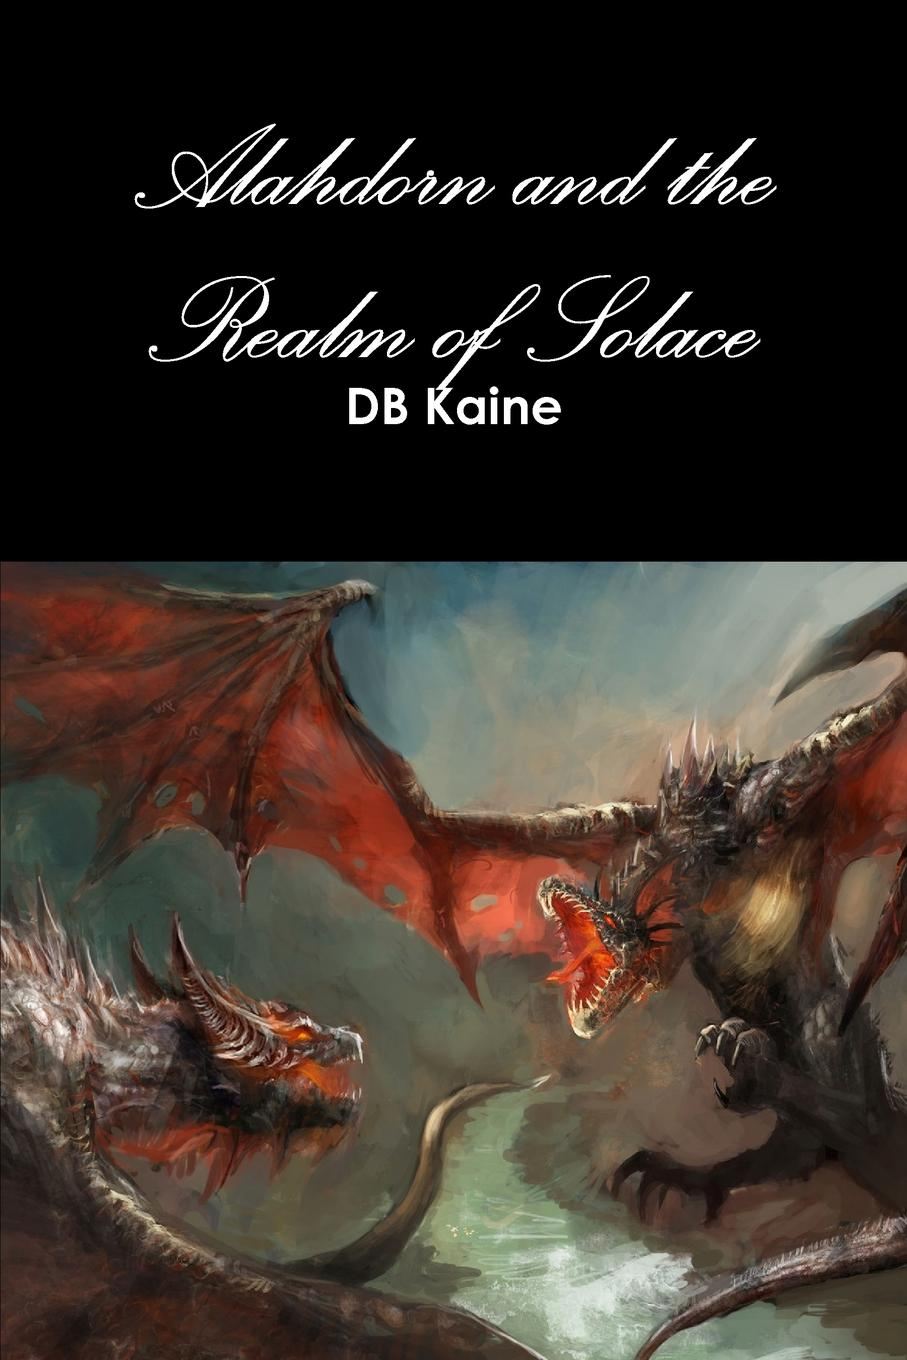 DB Kaine Alahdorn and the Realm of Solace debtors prison the politics of austerity versus possibility